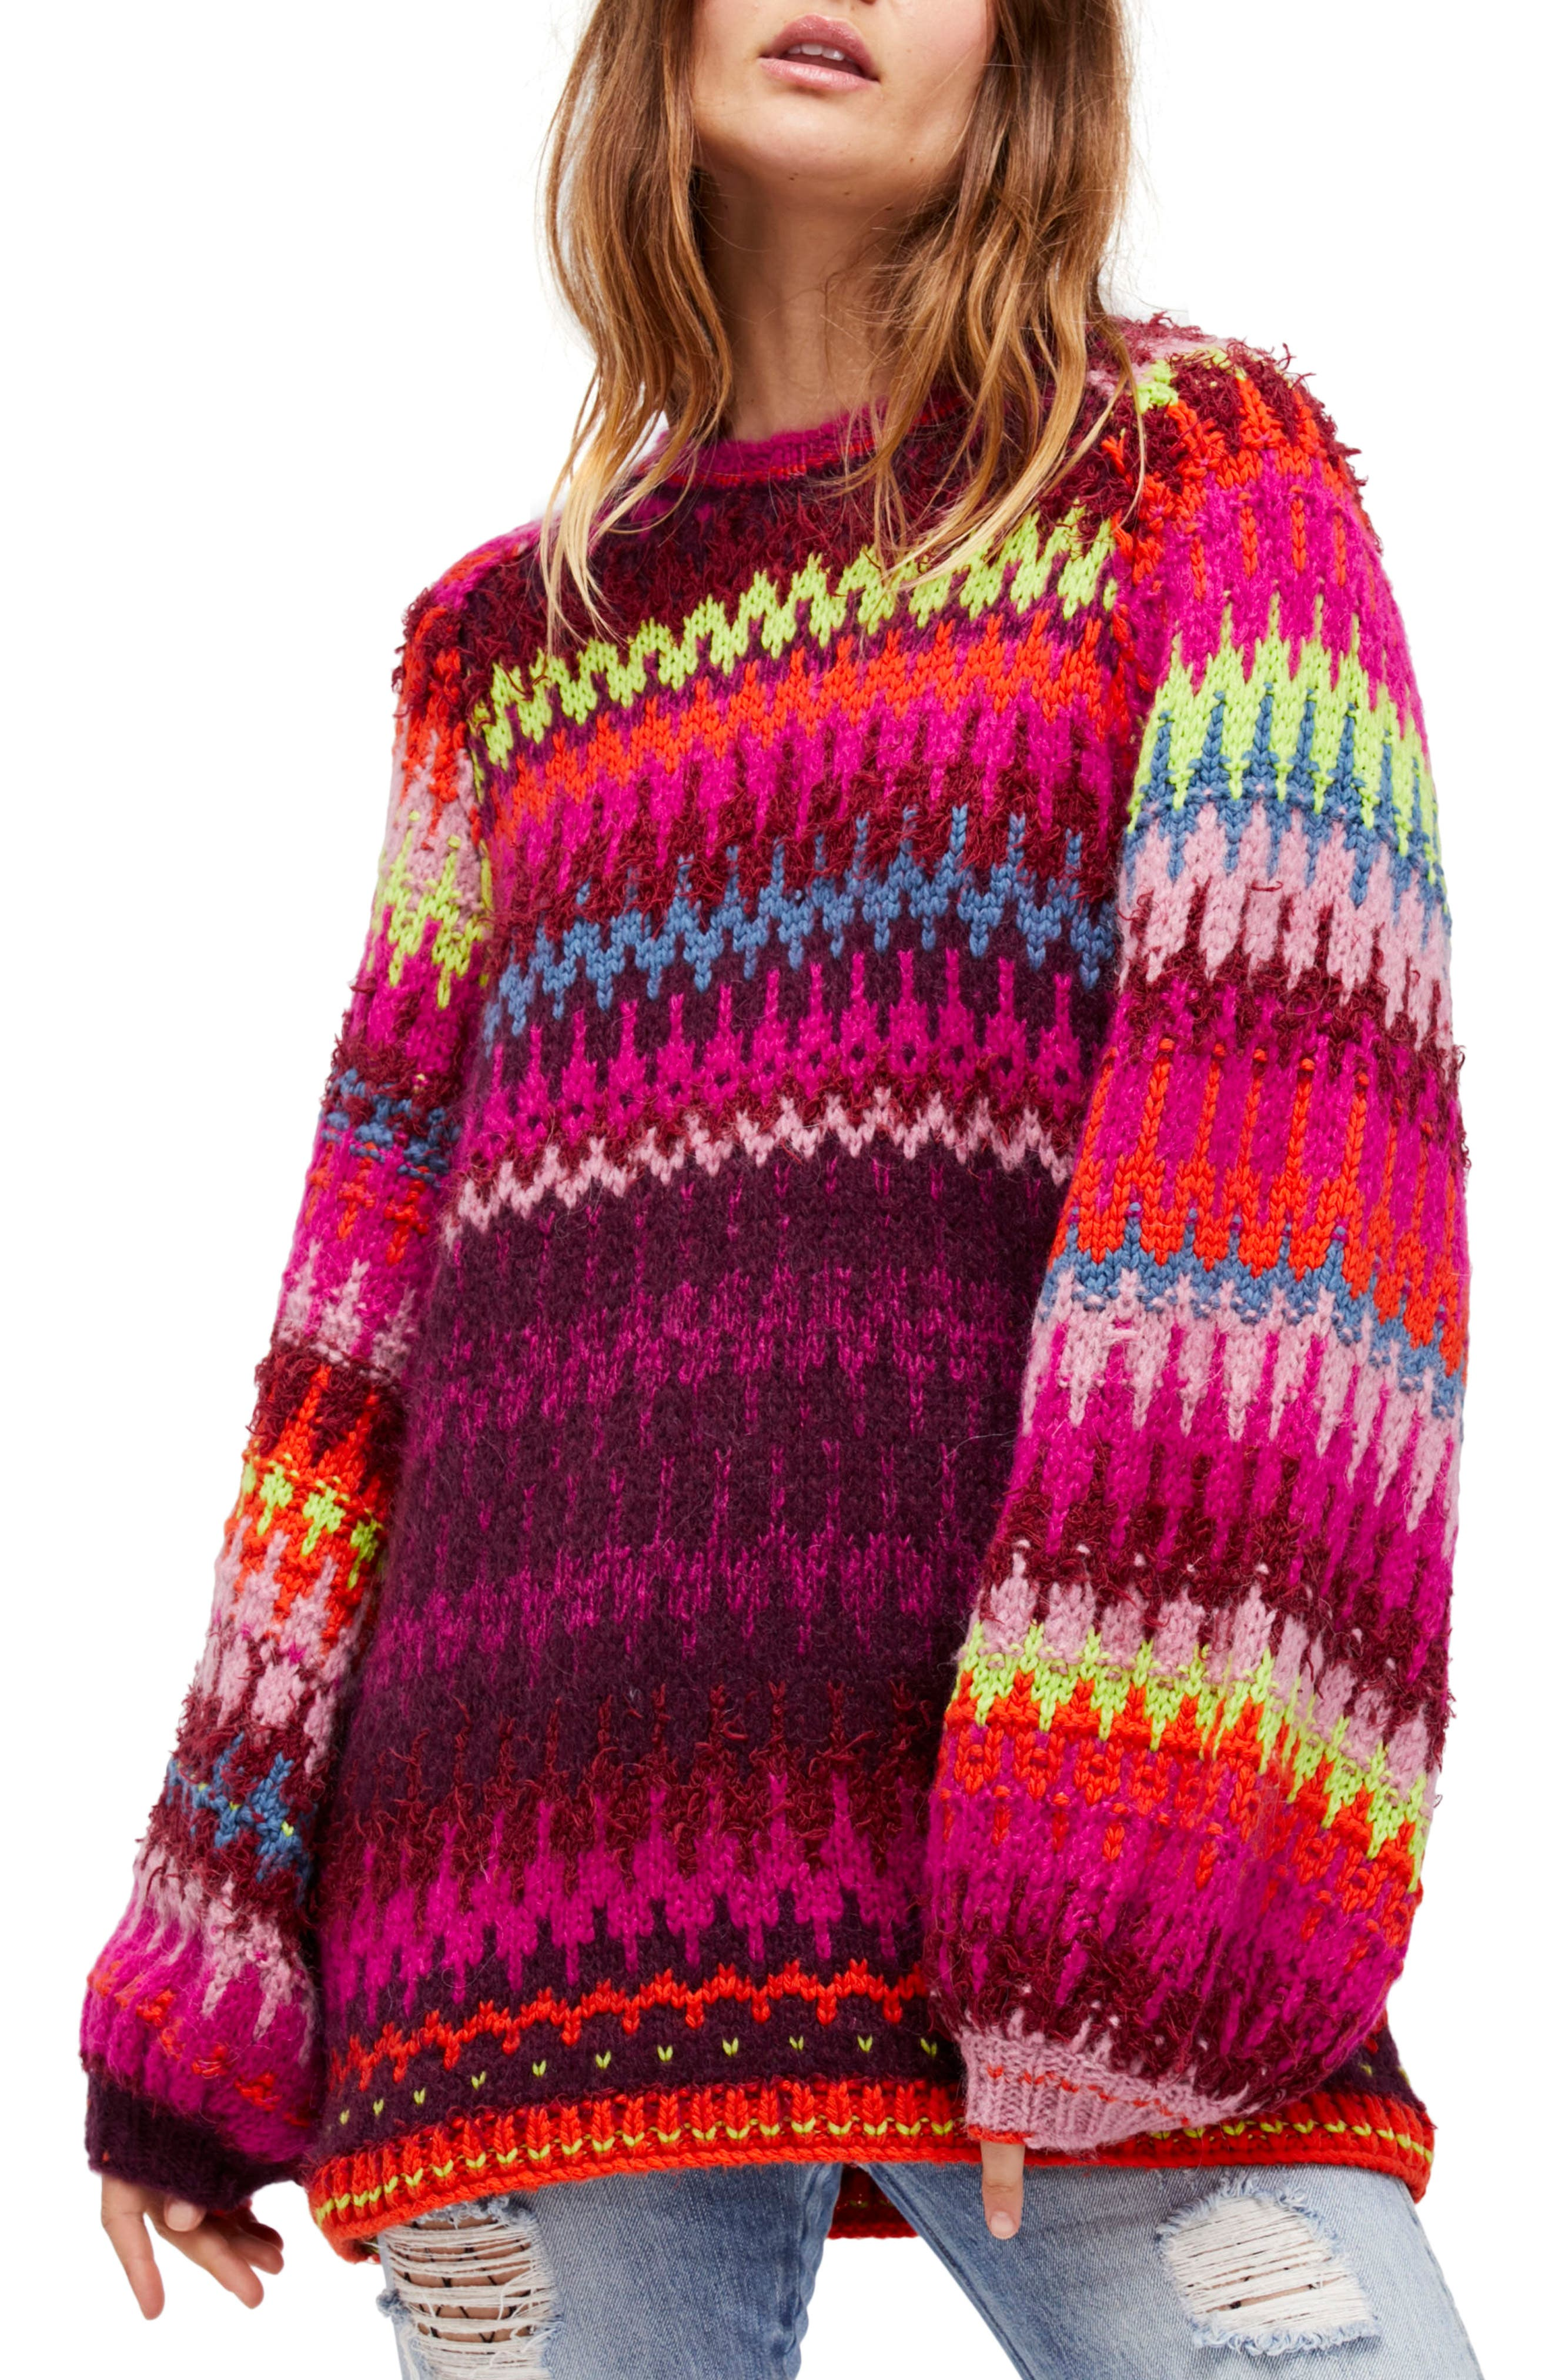 Castles in the Sky Sweater,                         Main,                         color, 697